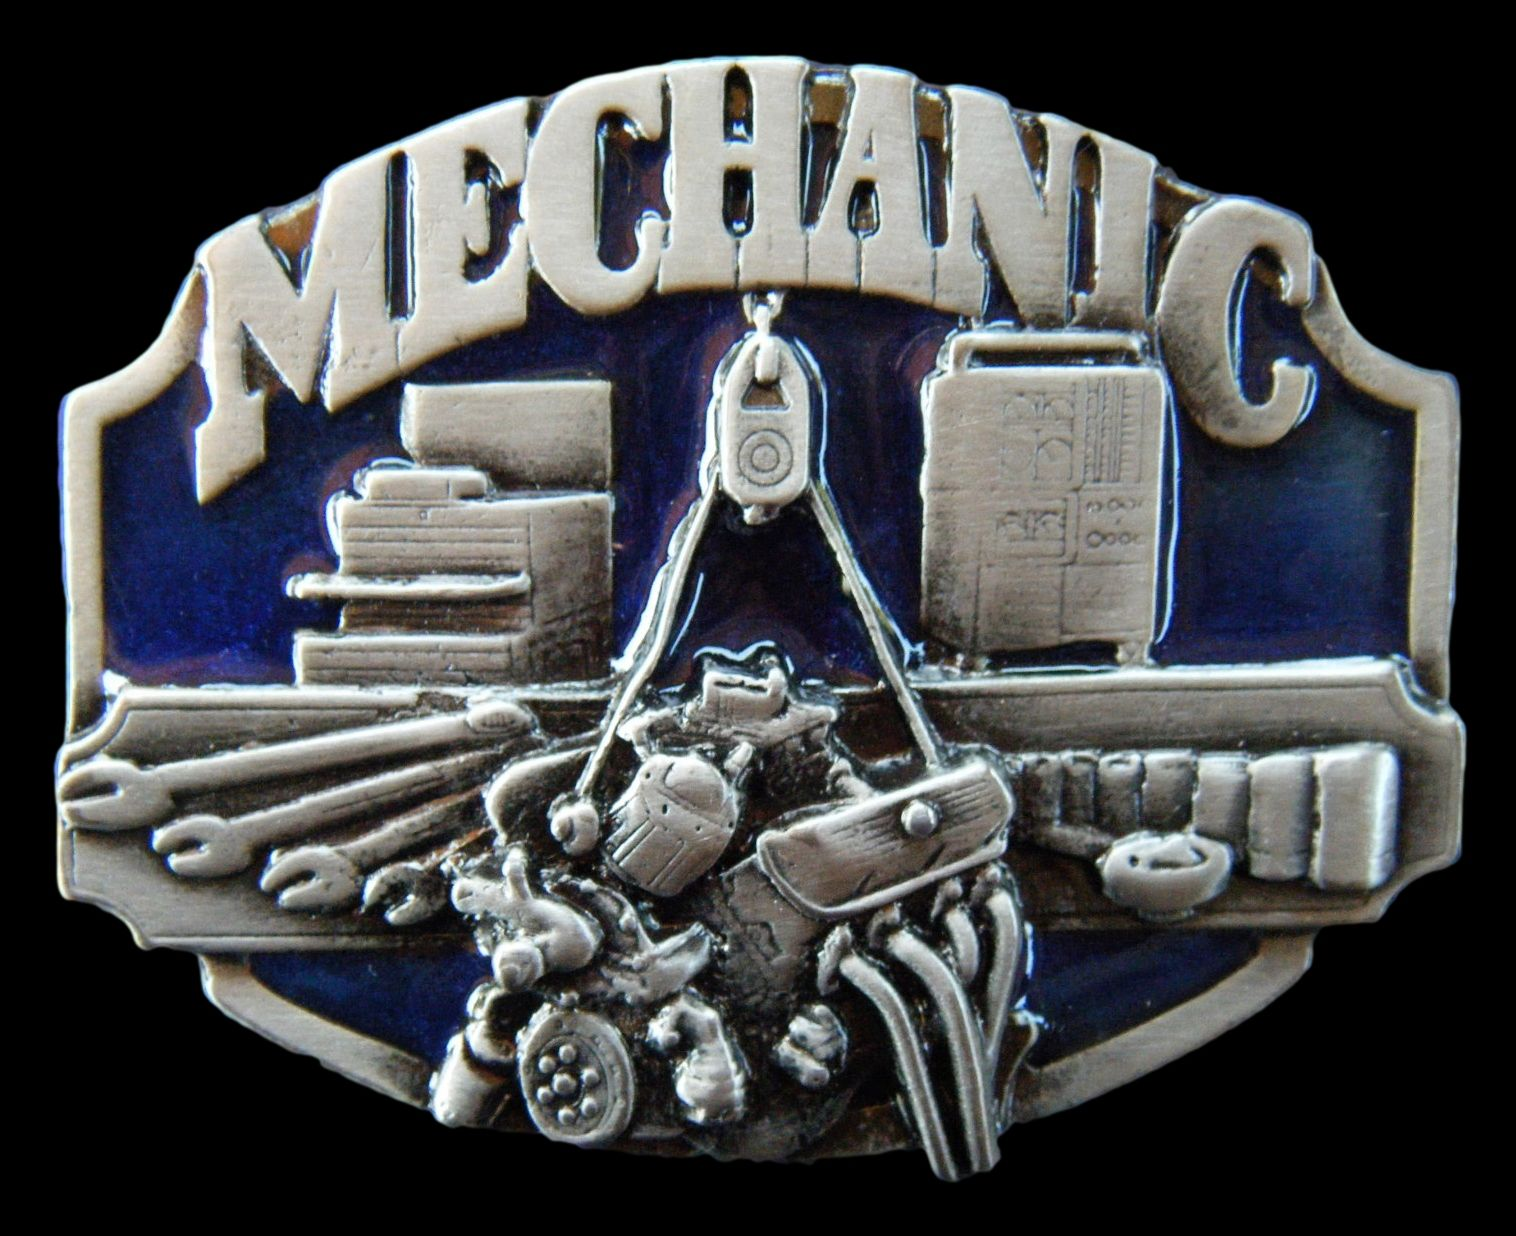 CAR MECHANIC BELT BUCKLES MECHANICS CARS TRUCKS GARAGE MEN'S TOOLS  BUCKLE #mechanic #mechanicbuckle #mechanicbeltbuckle #beltbuckles #carbeltbuckle #occupation #mechanictools